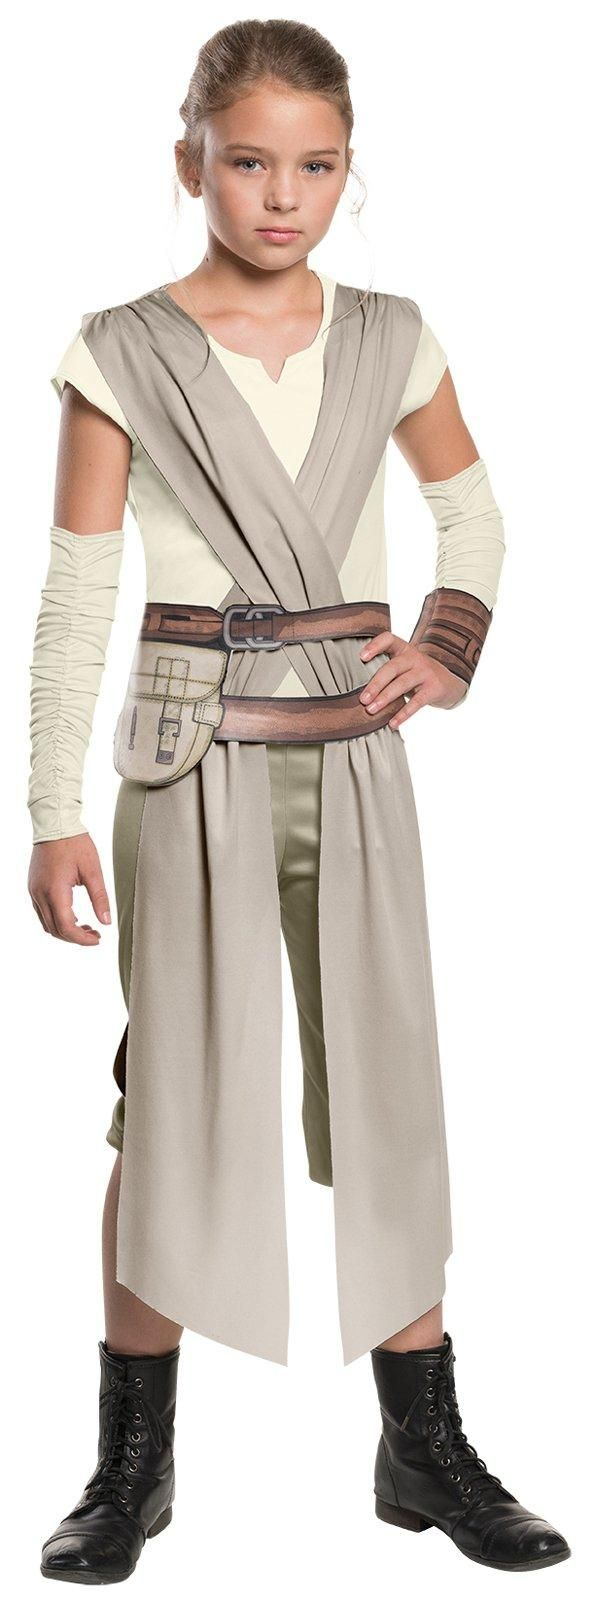 Star Wars:  The Force Awakens - Classic Rey Costume For Girls from Buycostumes.com